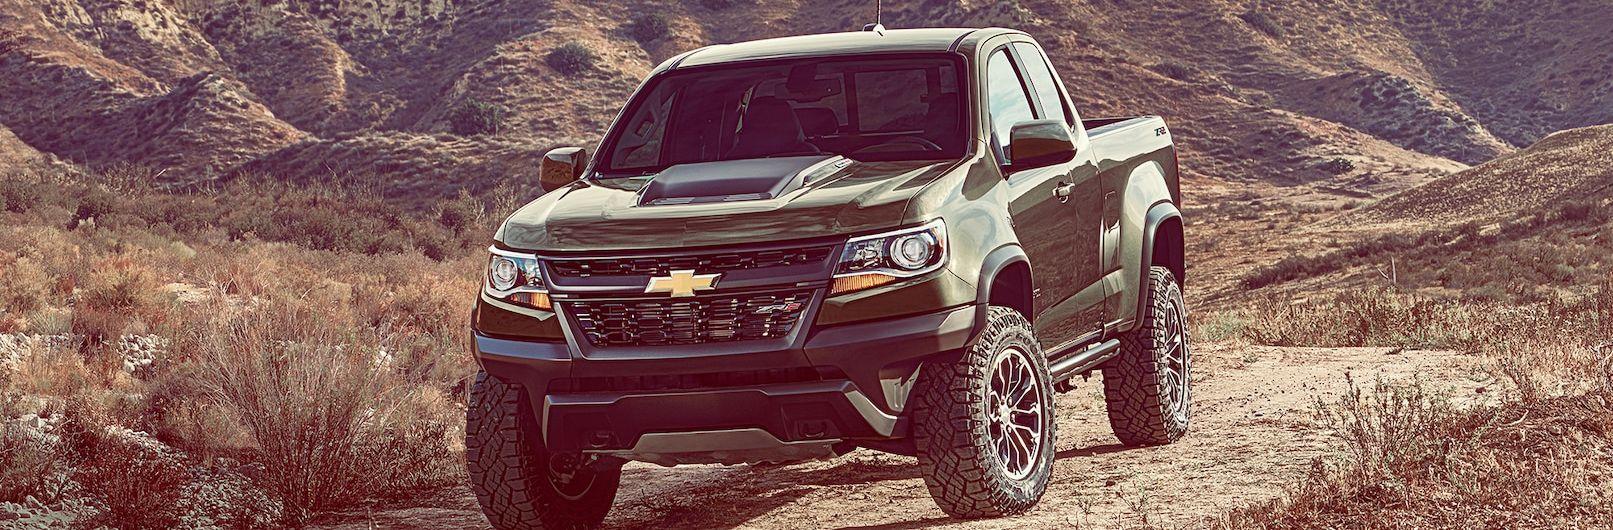 2018 Chevrolet Colorado for Sale in Elk Grove, CA